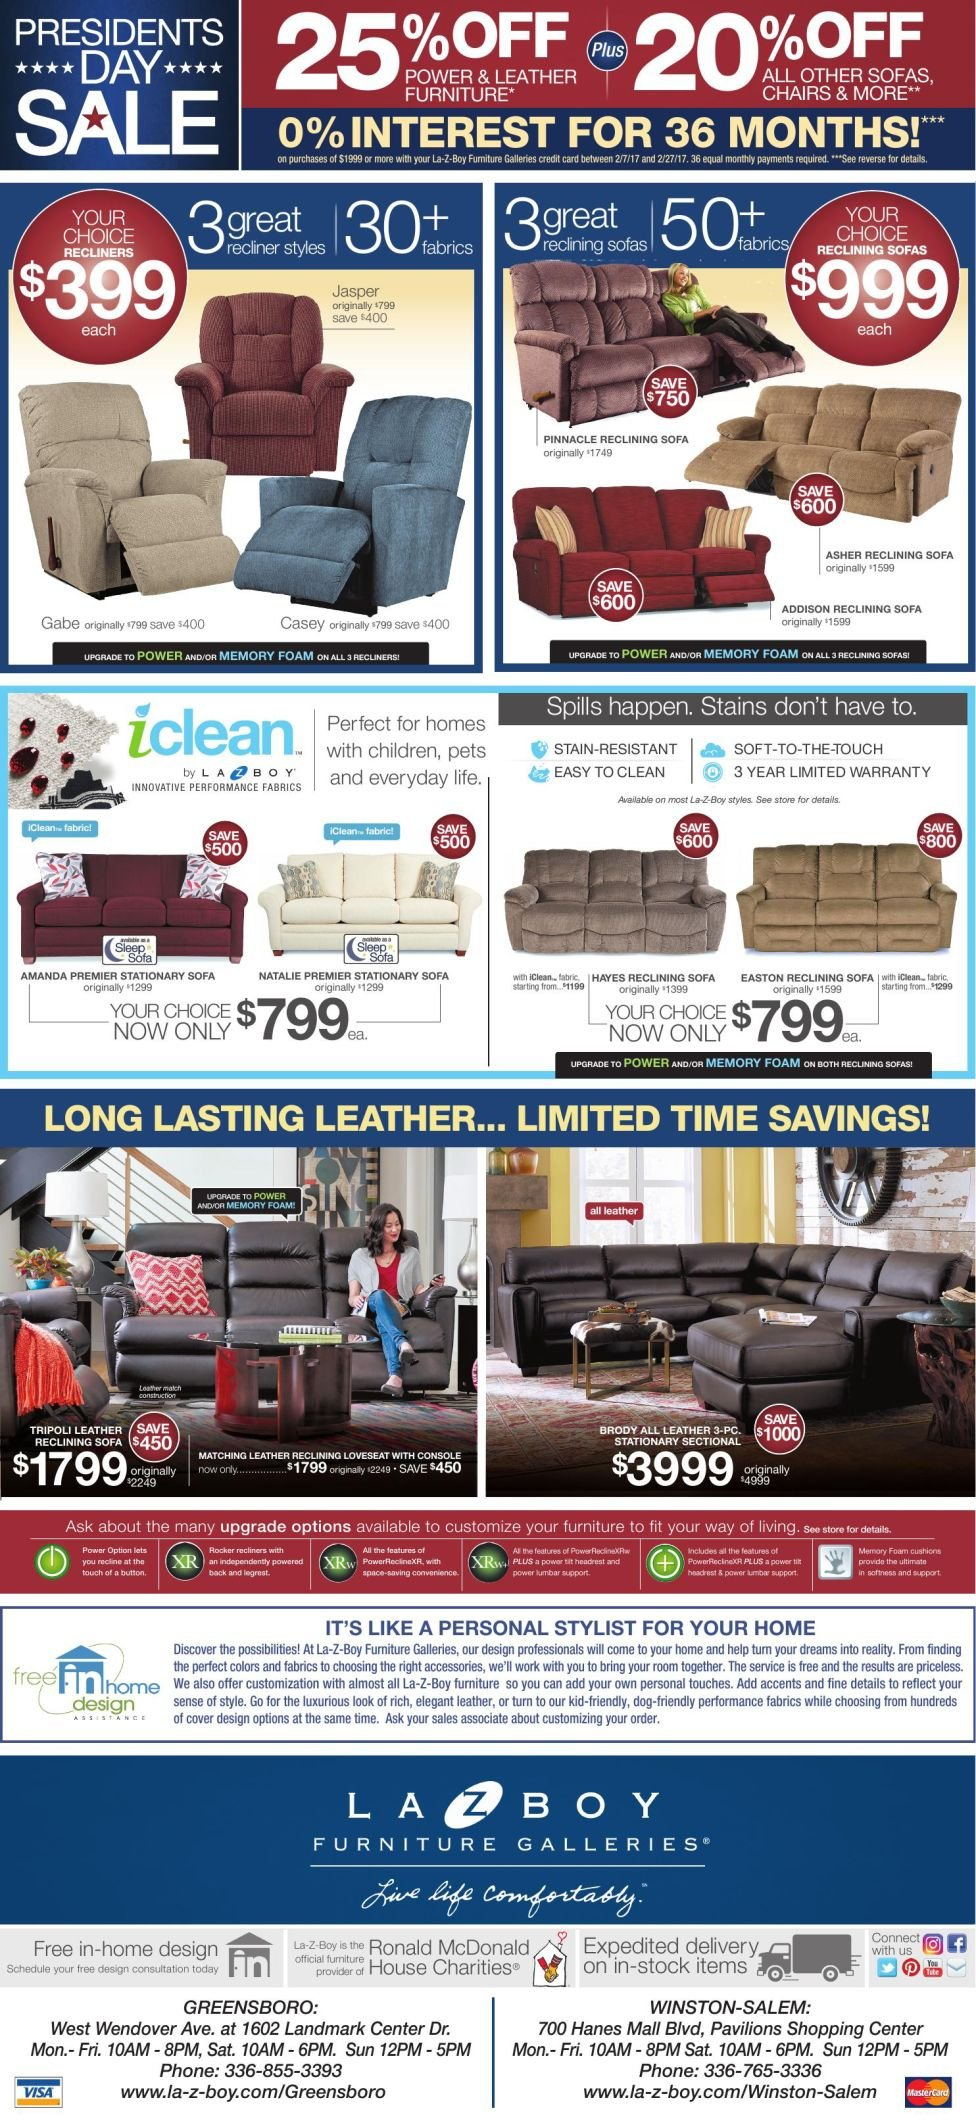 2017 Presidents Day Furniture Sale Flyer